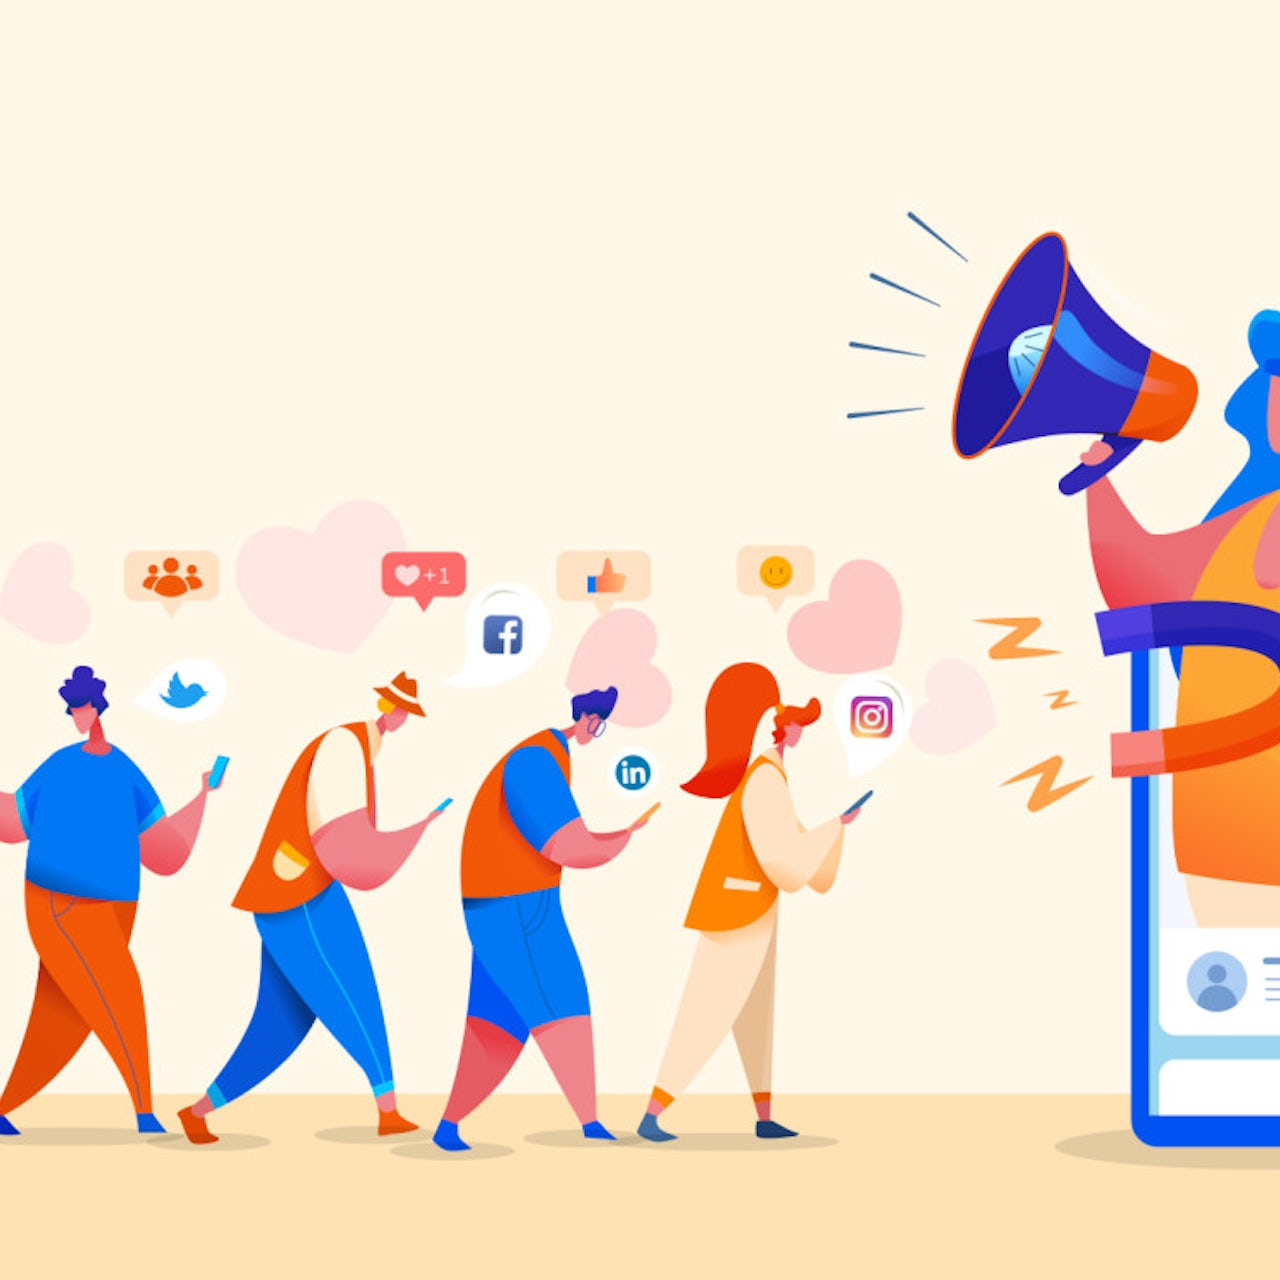 The complete guide to social media design - 99designs